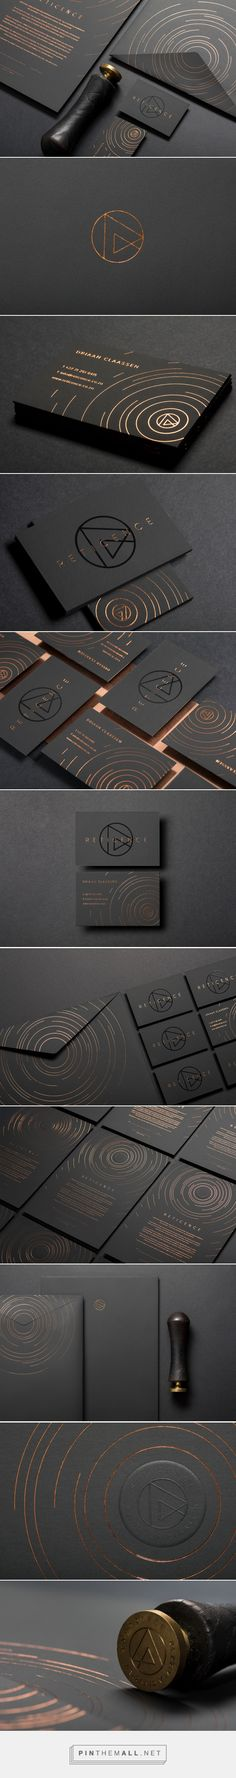 Reticence Sculptor Branding by Erwin Bindeman | Fivestar Branding Agency – Design and Branding Agency & Curated Inspiration Gallery #branding #brand #businesscards #design #designinspiration